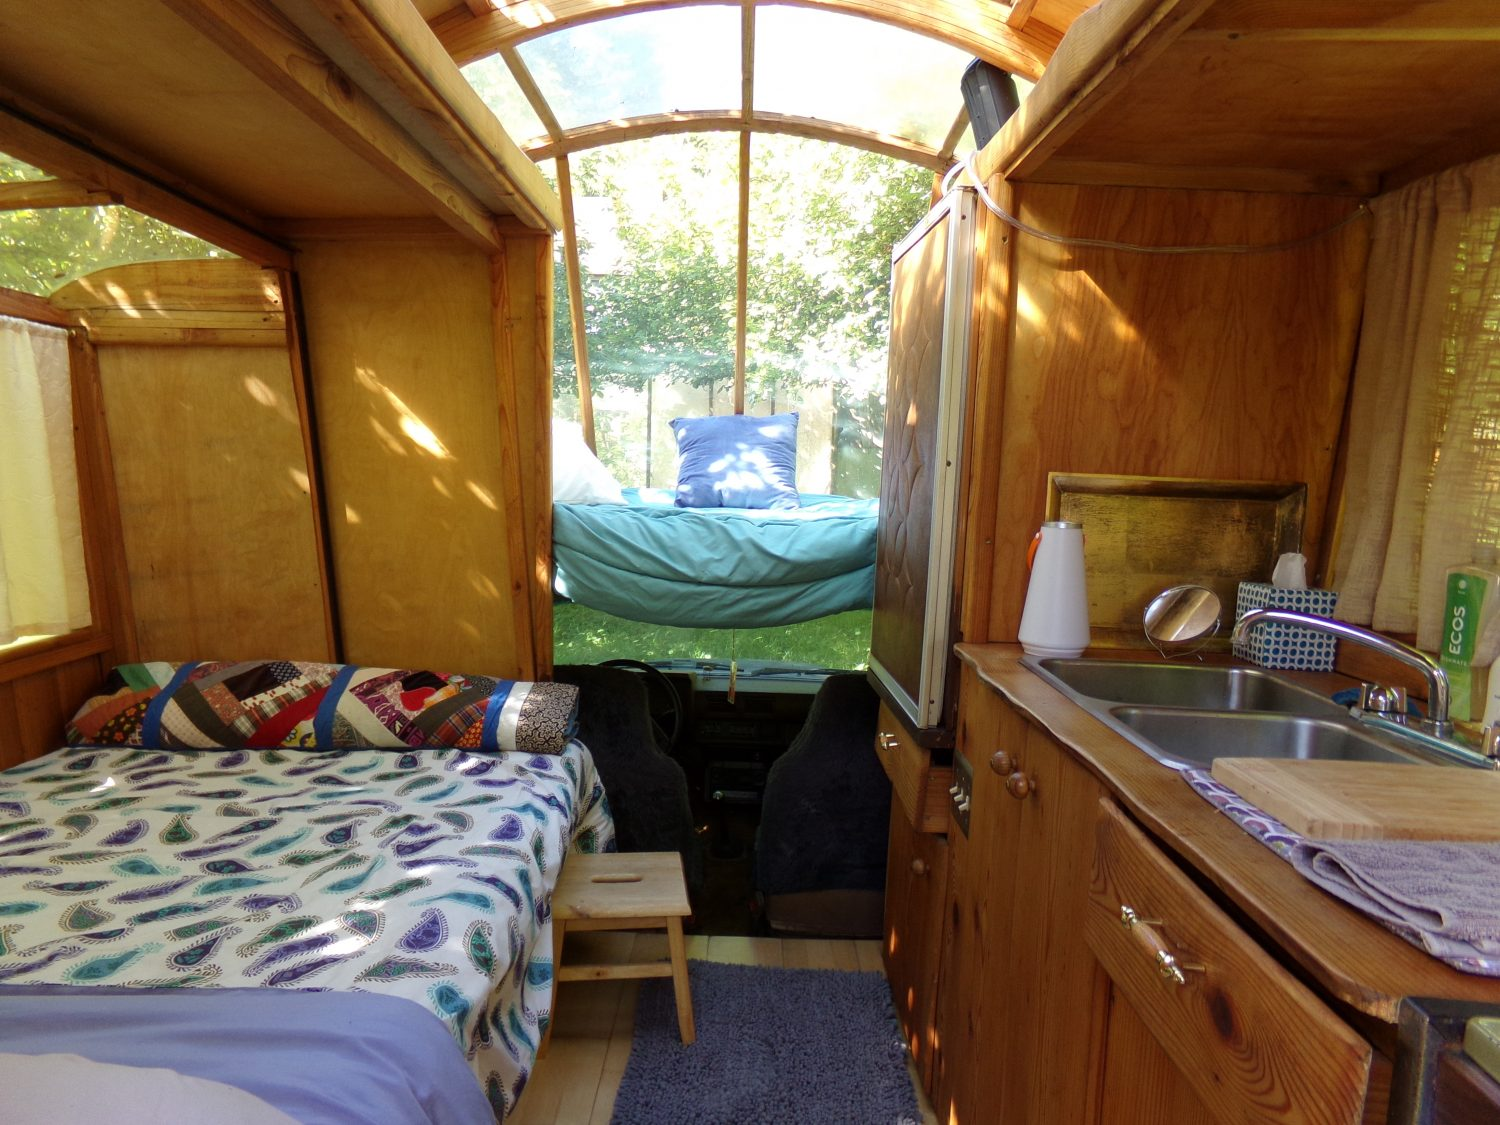 Gypsy Wagon Build By Sunray Kelley Interior Photo Tour